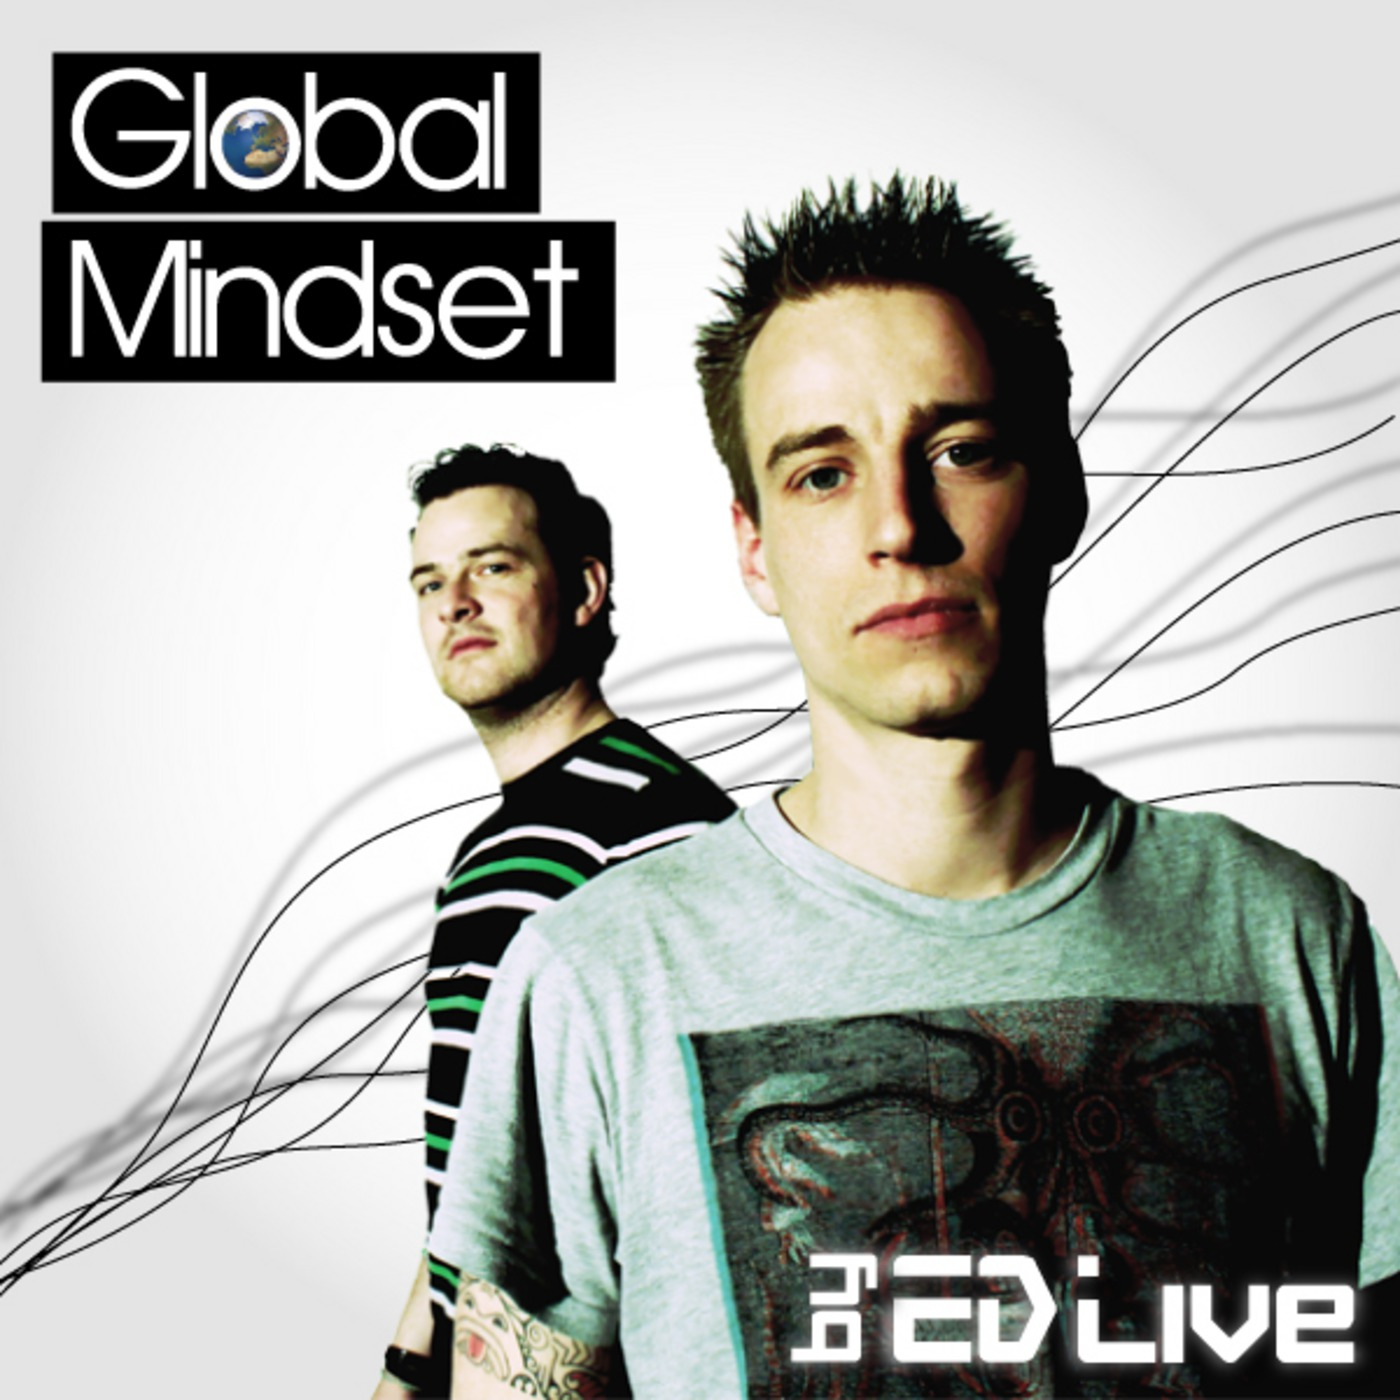 Ed Live's Global Mindset